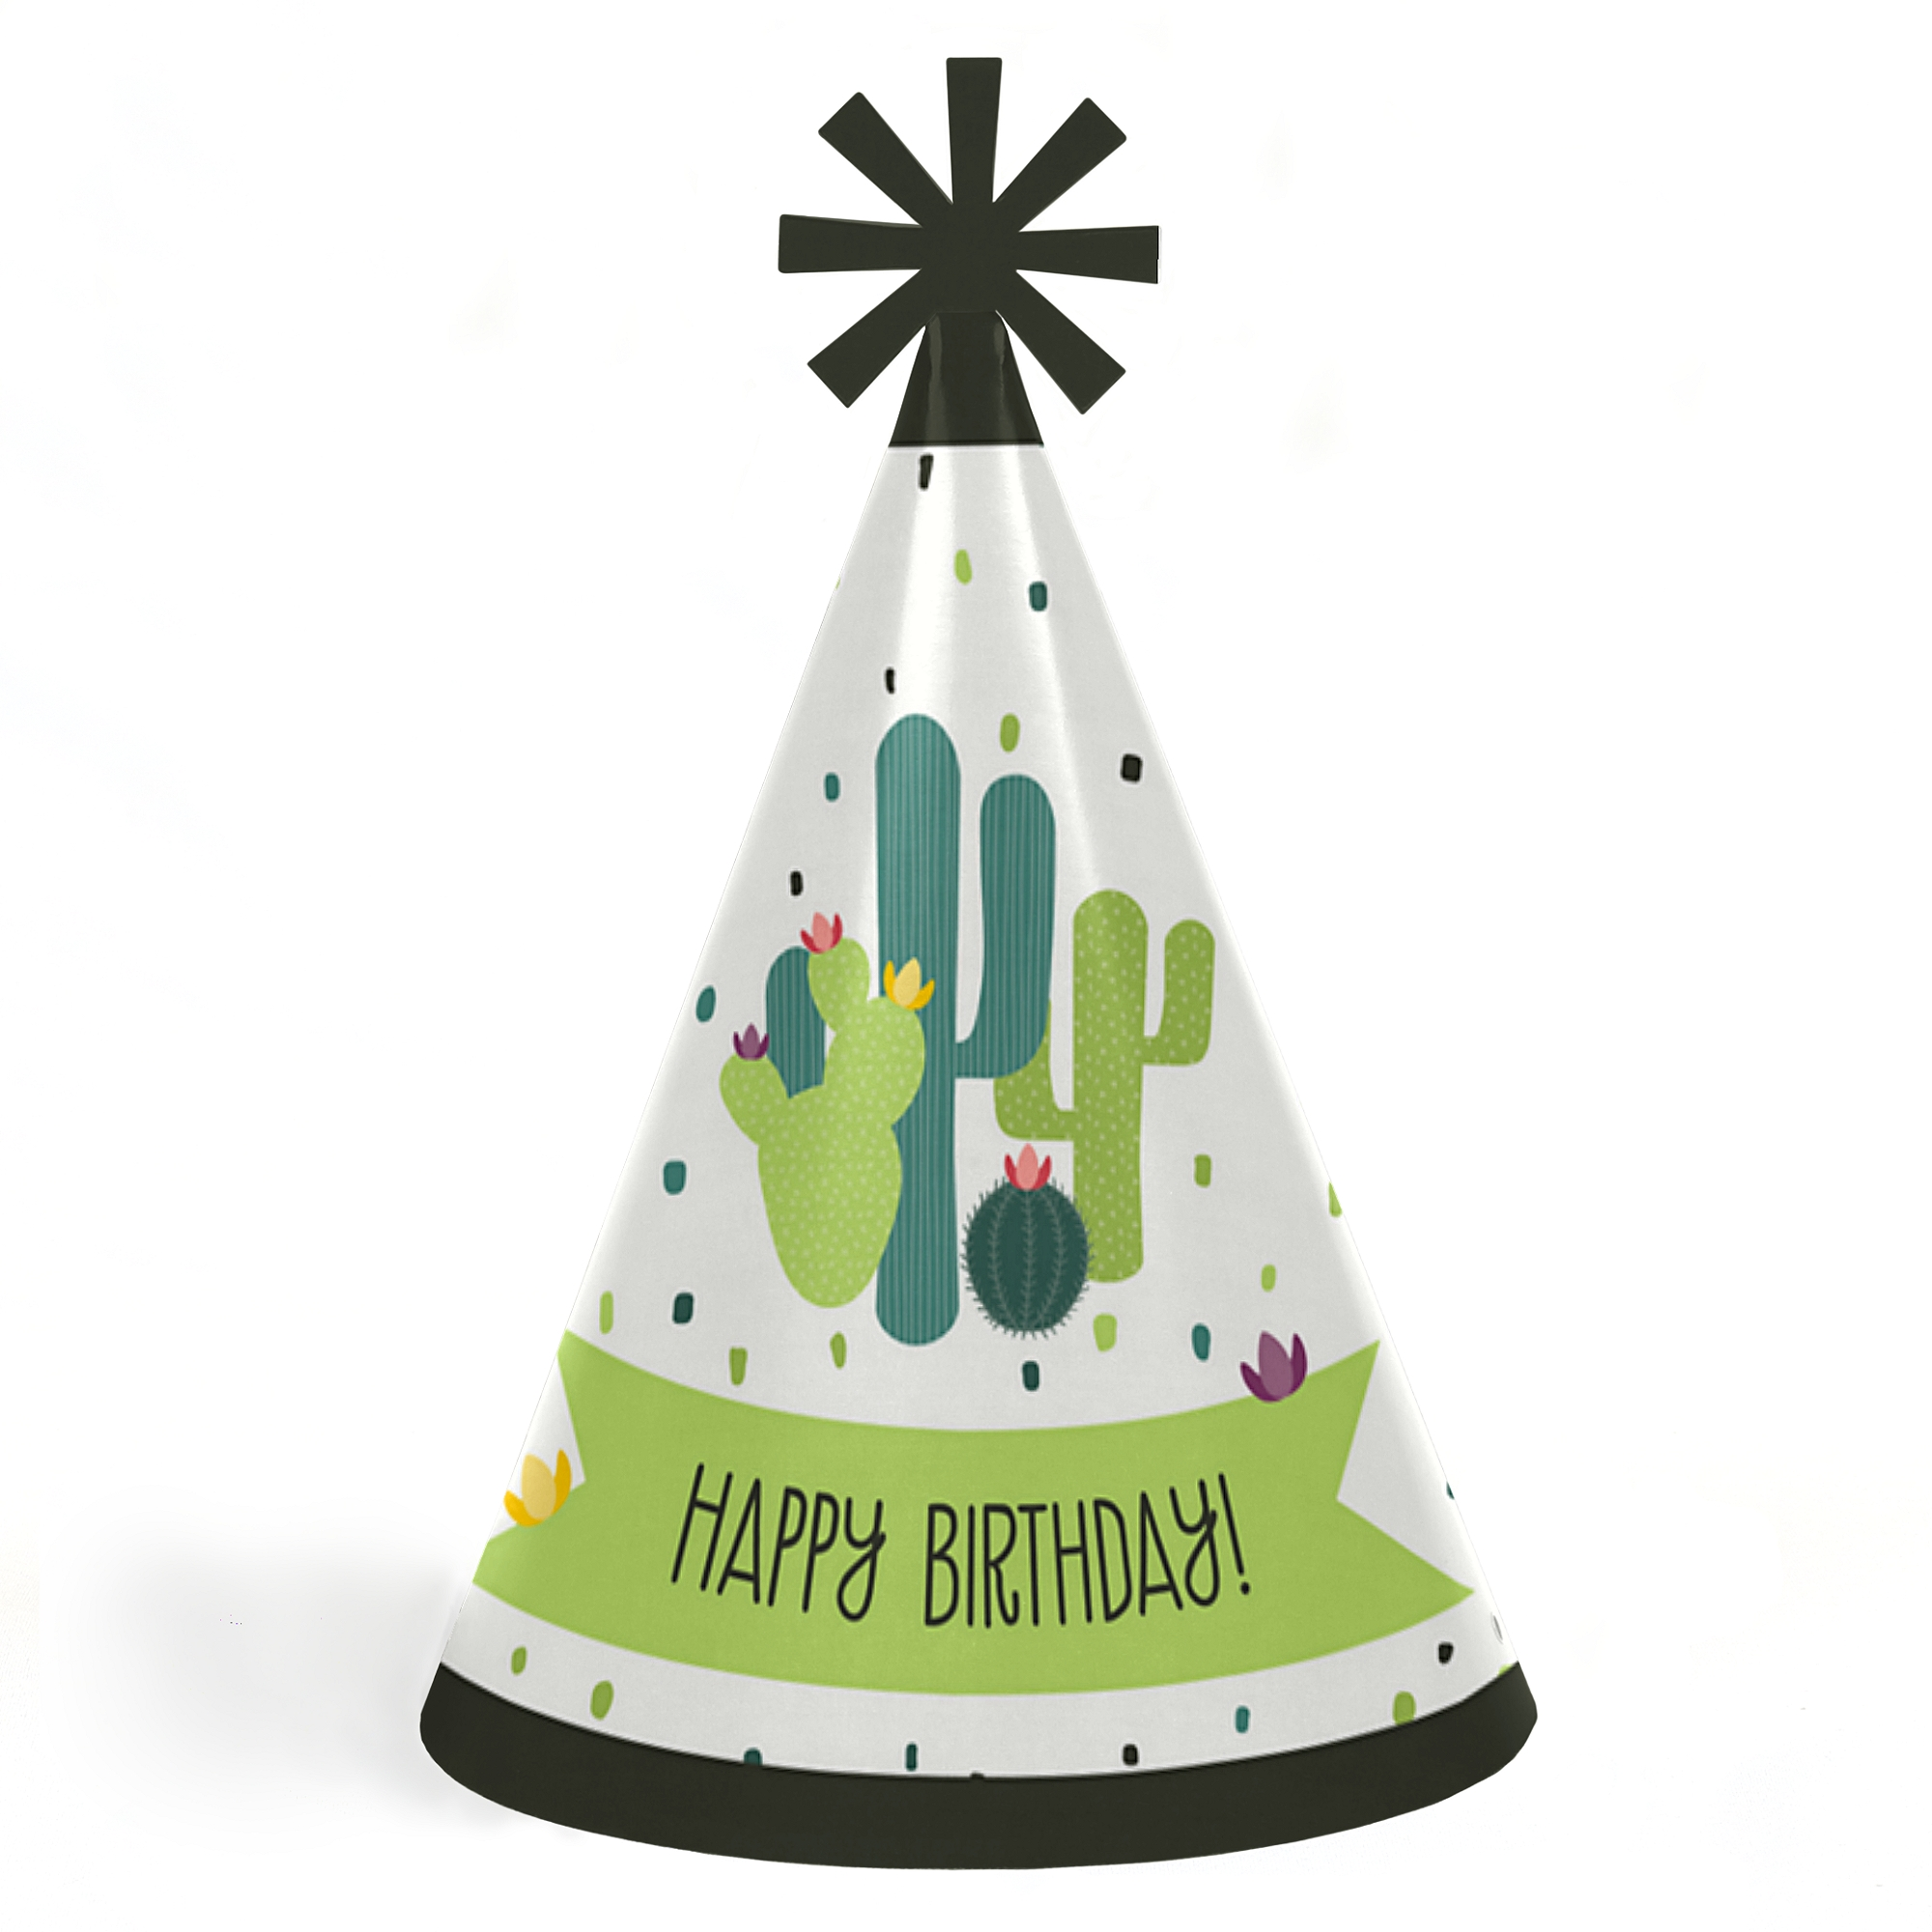 Prickly Cactus Party - Cone Happy Birthday Party Hats for Kids and Adults - Set of 8 (Standard Size)